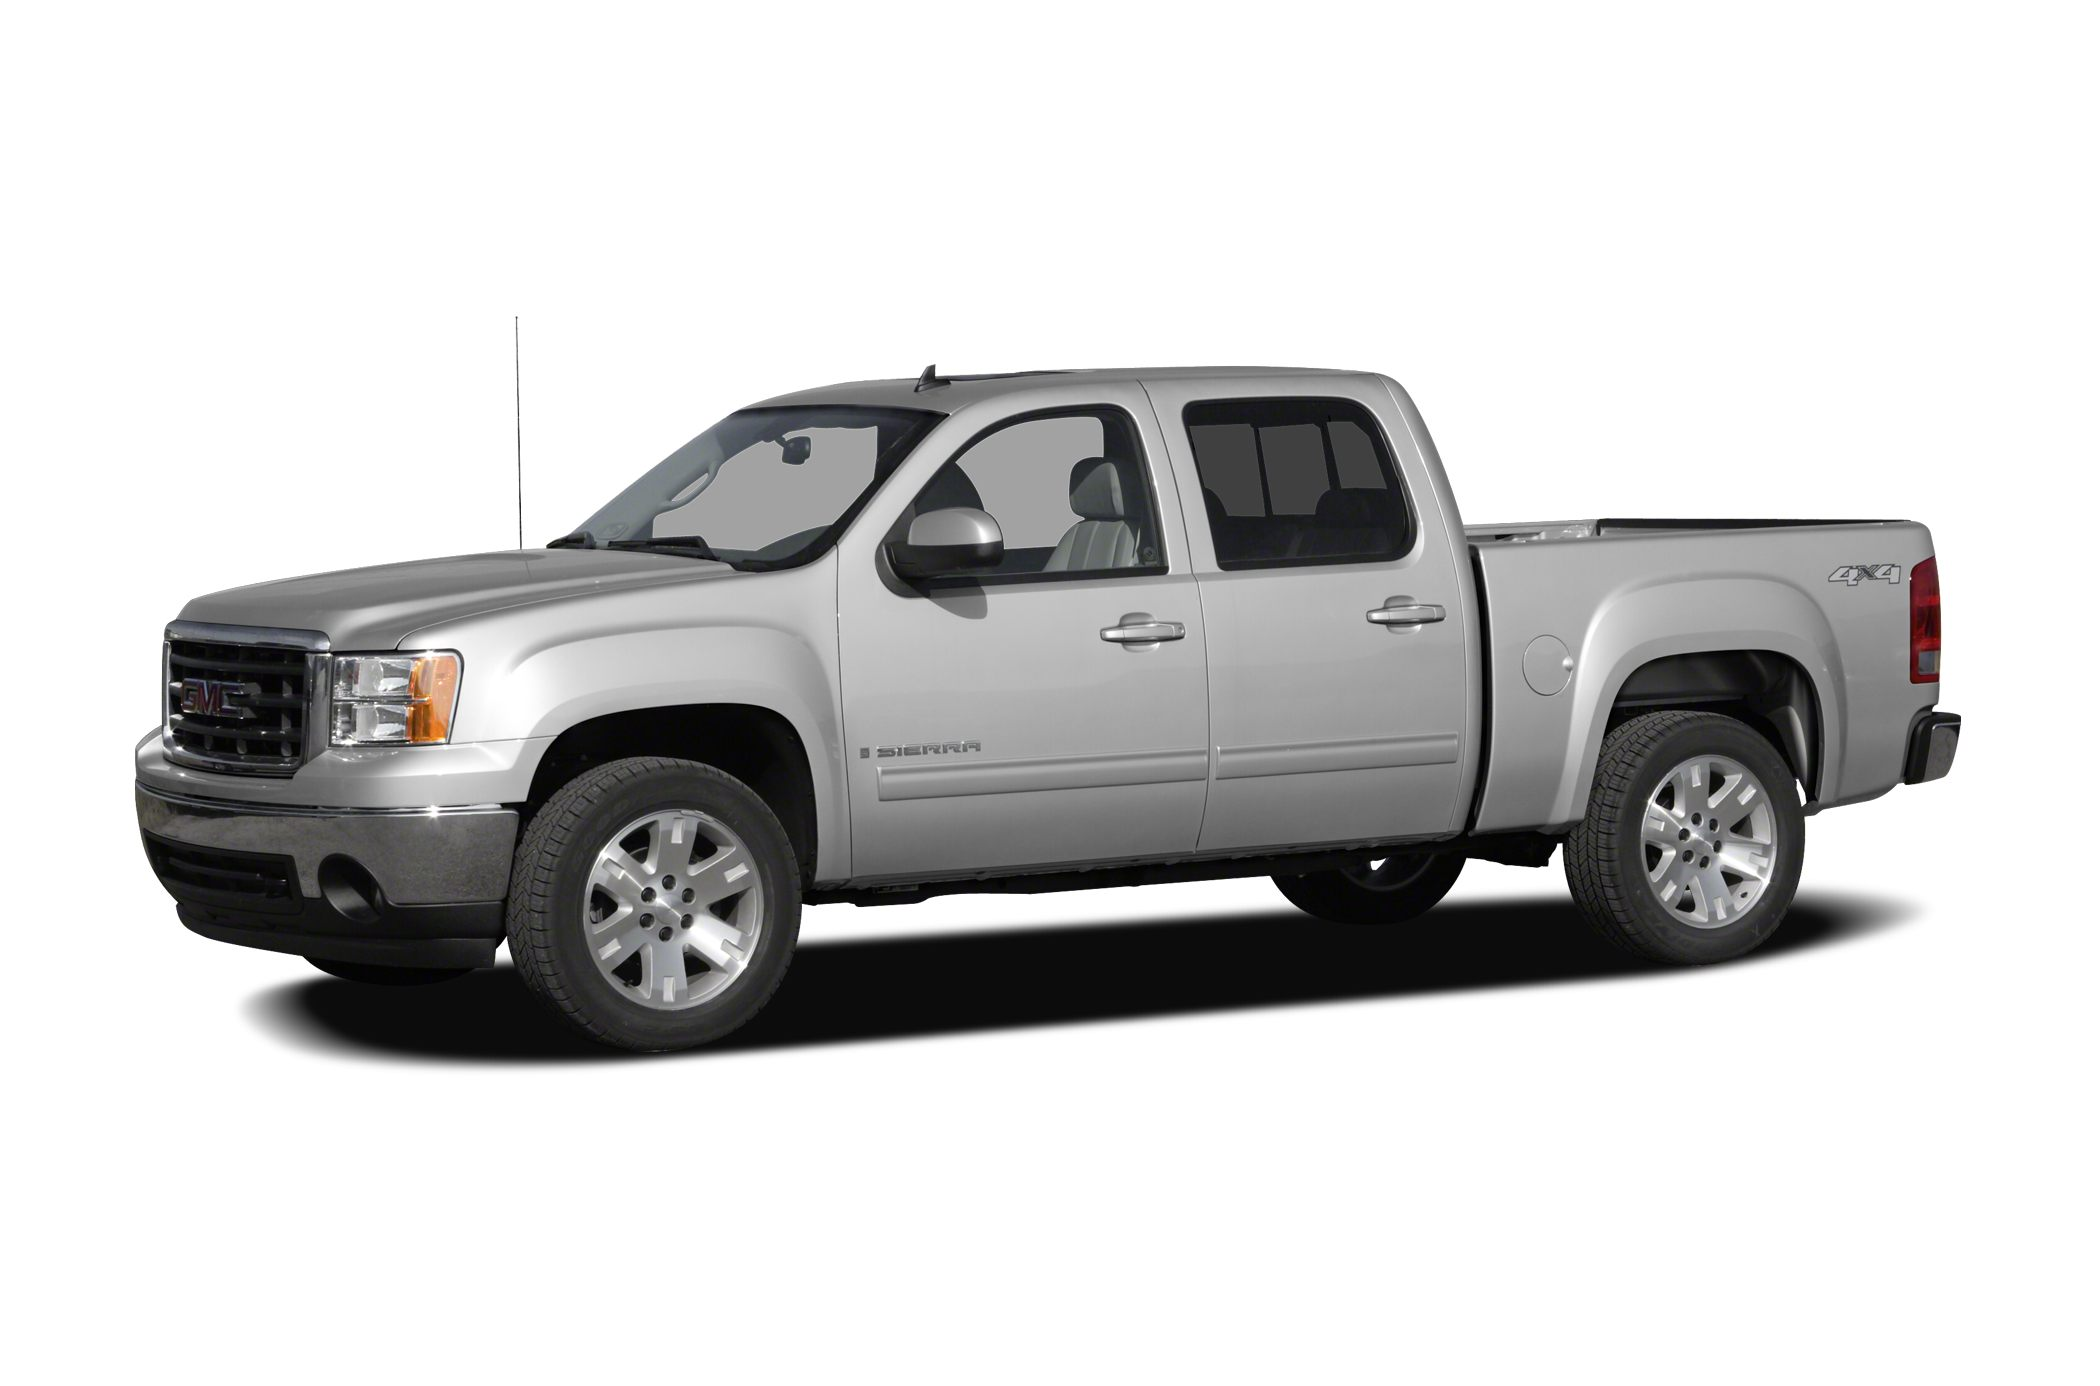 2011 GMC Sierra 1500 Denali Crew Cab Pickup for sale in Tulsa for $26,995 with 97,306 miles.